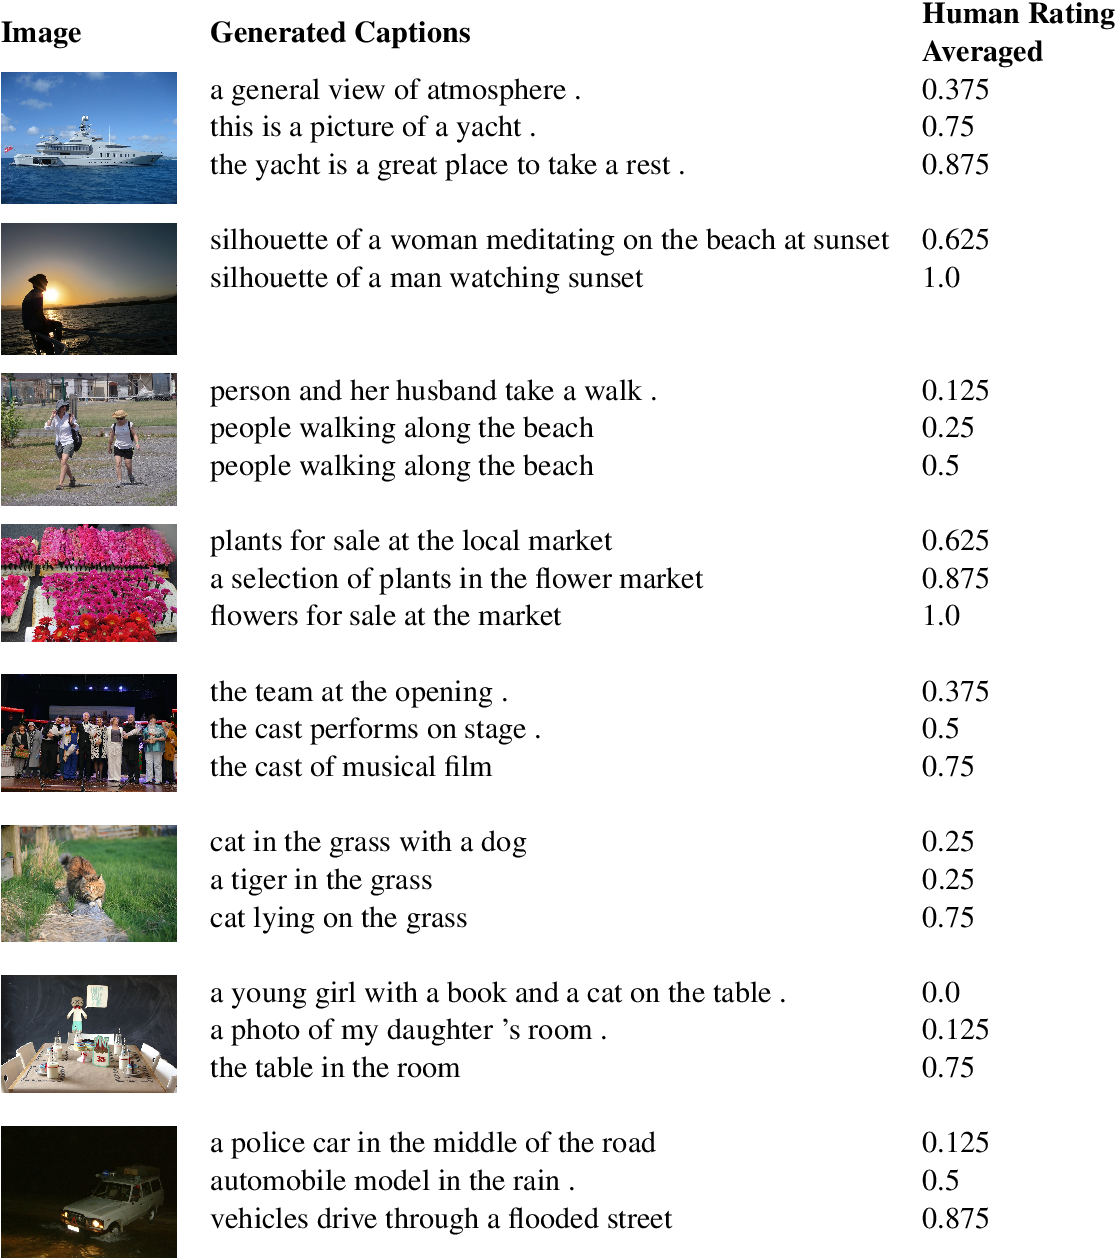 Figure 4 for Quality Estimation for Image Captions Based on Large-scale Human Evaluations